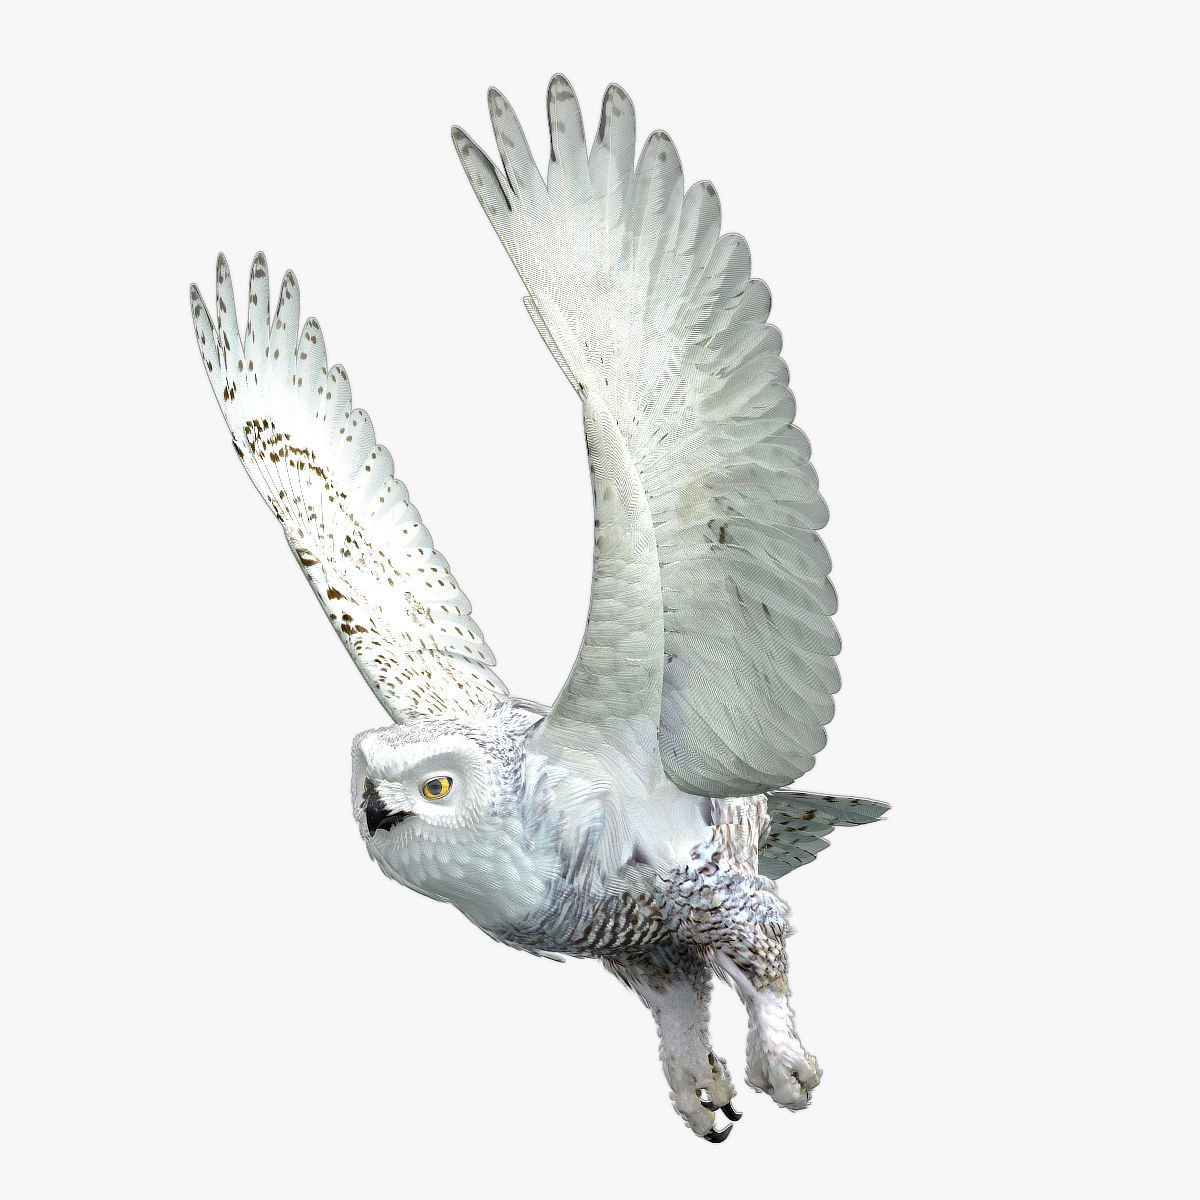 Snowy Owl - rigged - animated